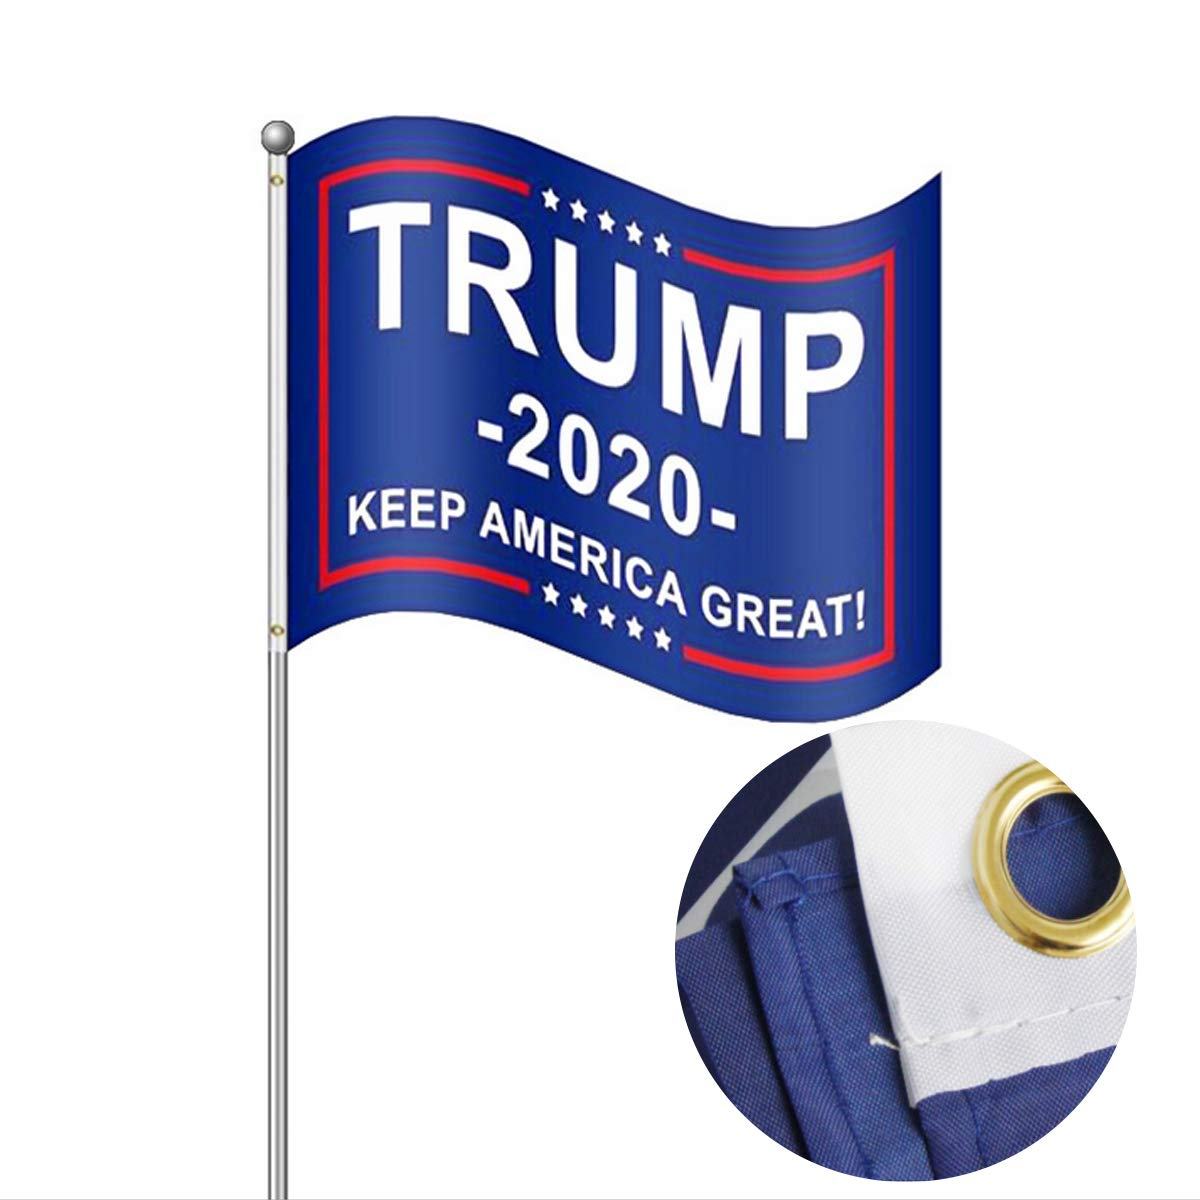 Amazon.com: Lita Donald Trump Flag 2020 Trump Keep America ...